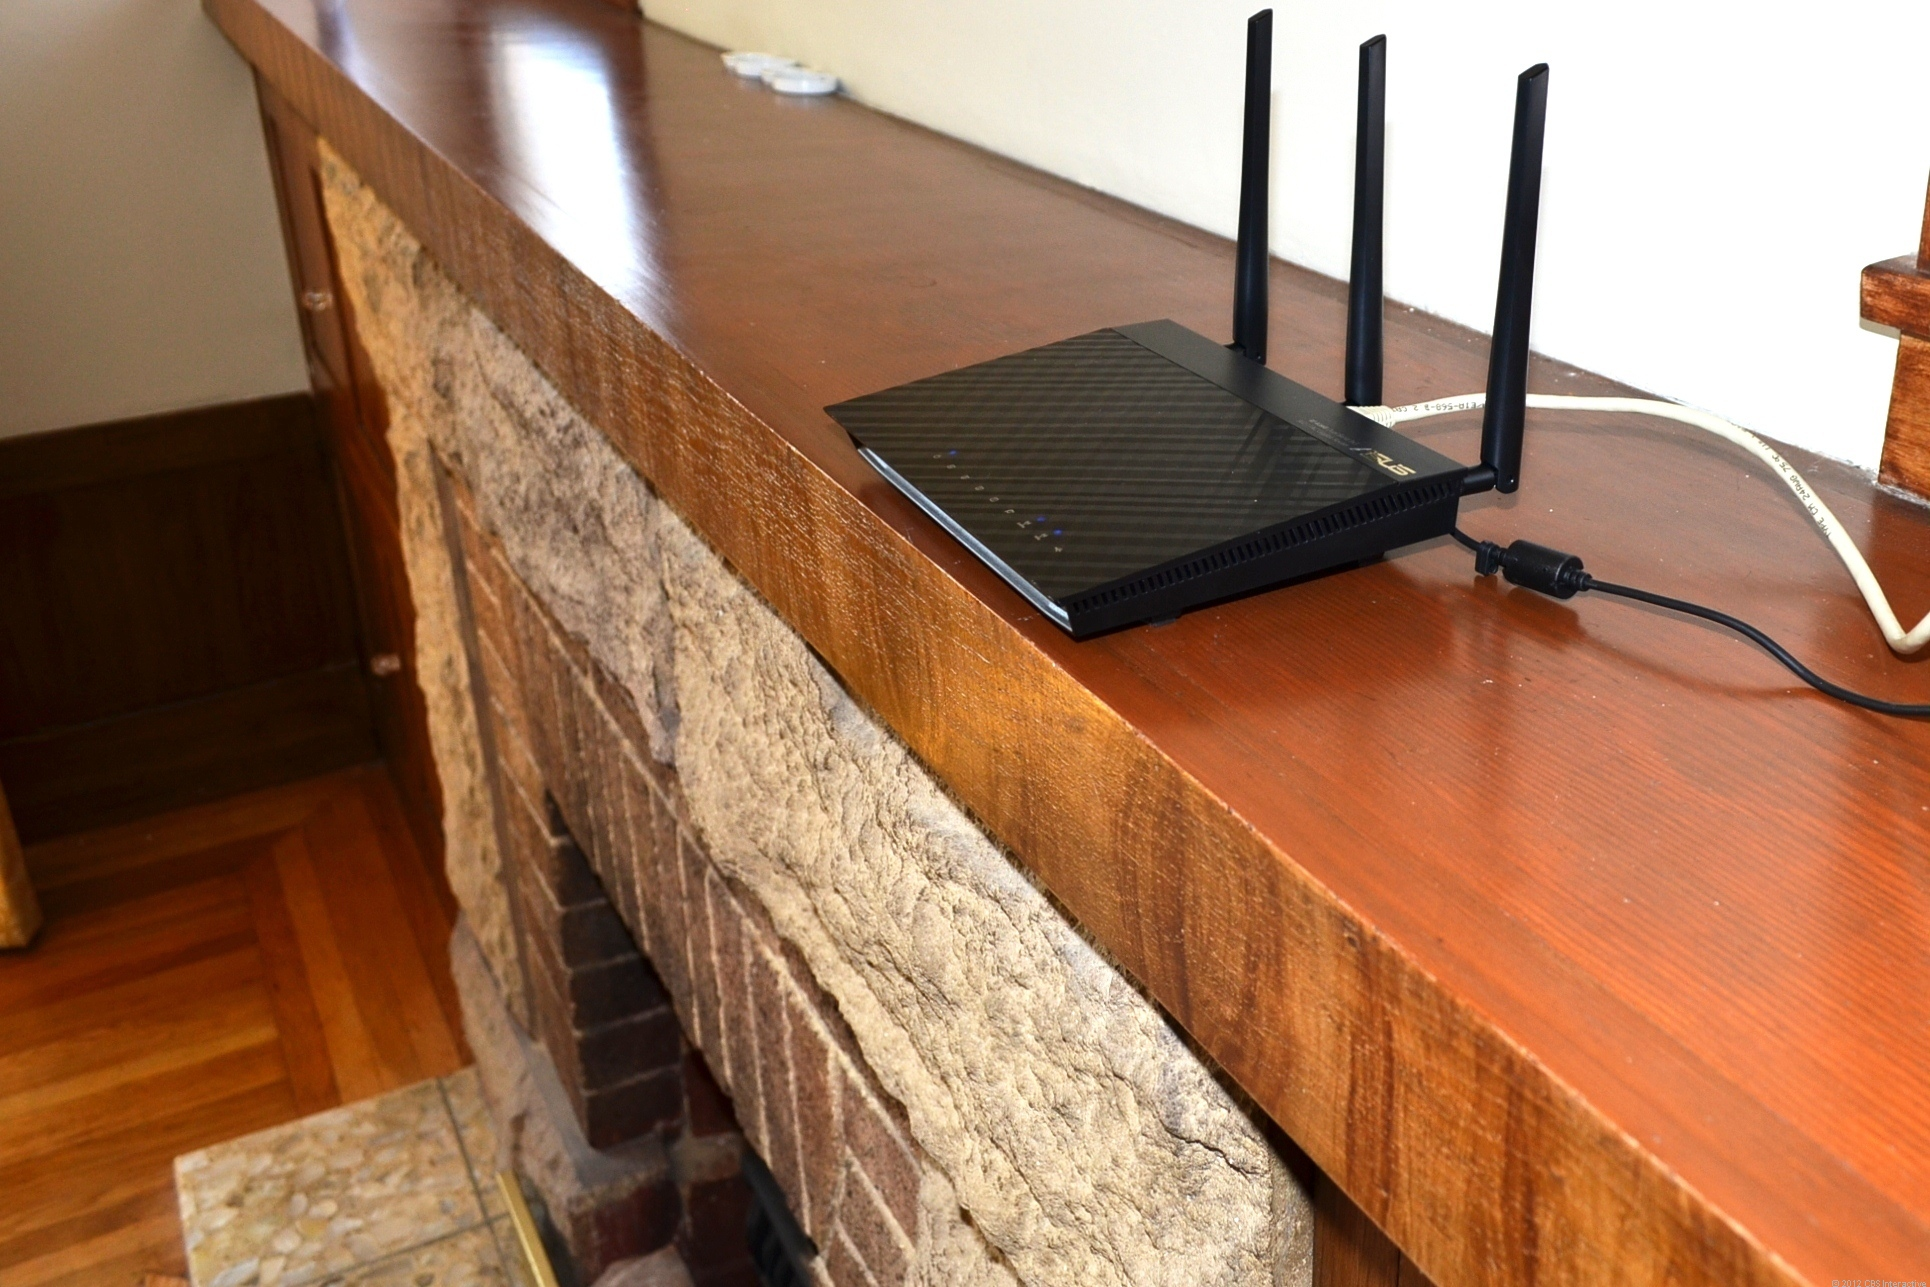 The top of the fireplace in the living room is a good spot to leave your Wi-Fi router for the best coverage.